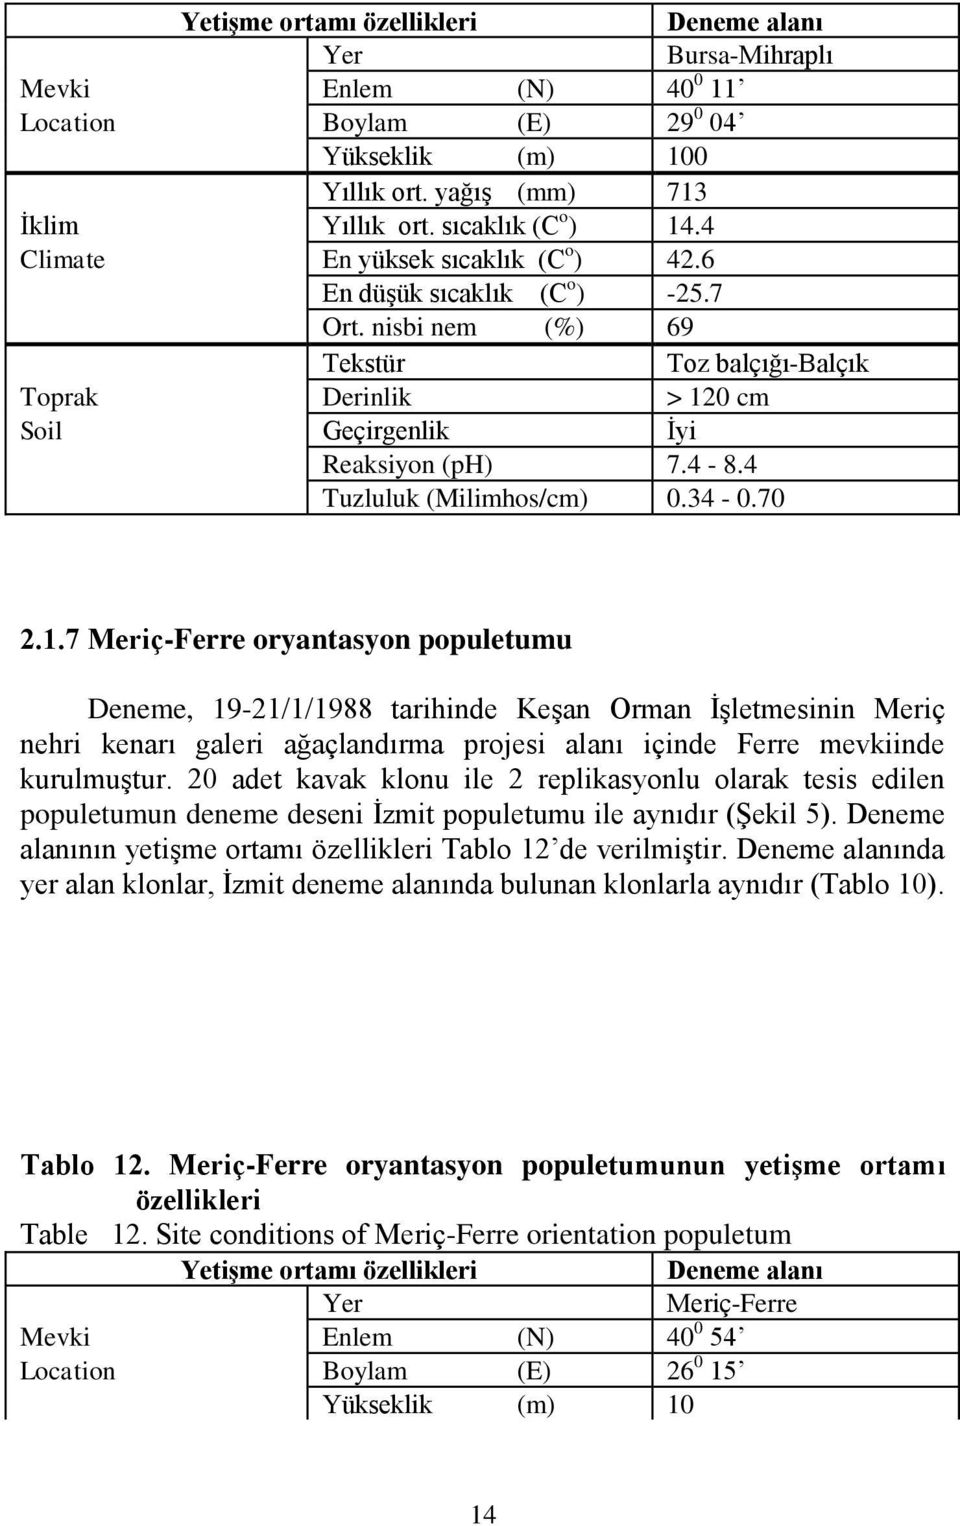 4 Tuzluluk (Milimhos/cm) 0.34-0.70 2.1.